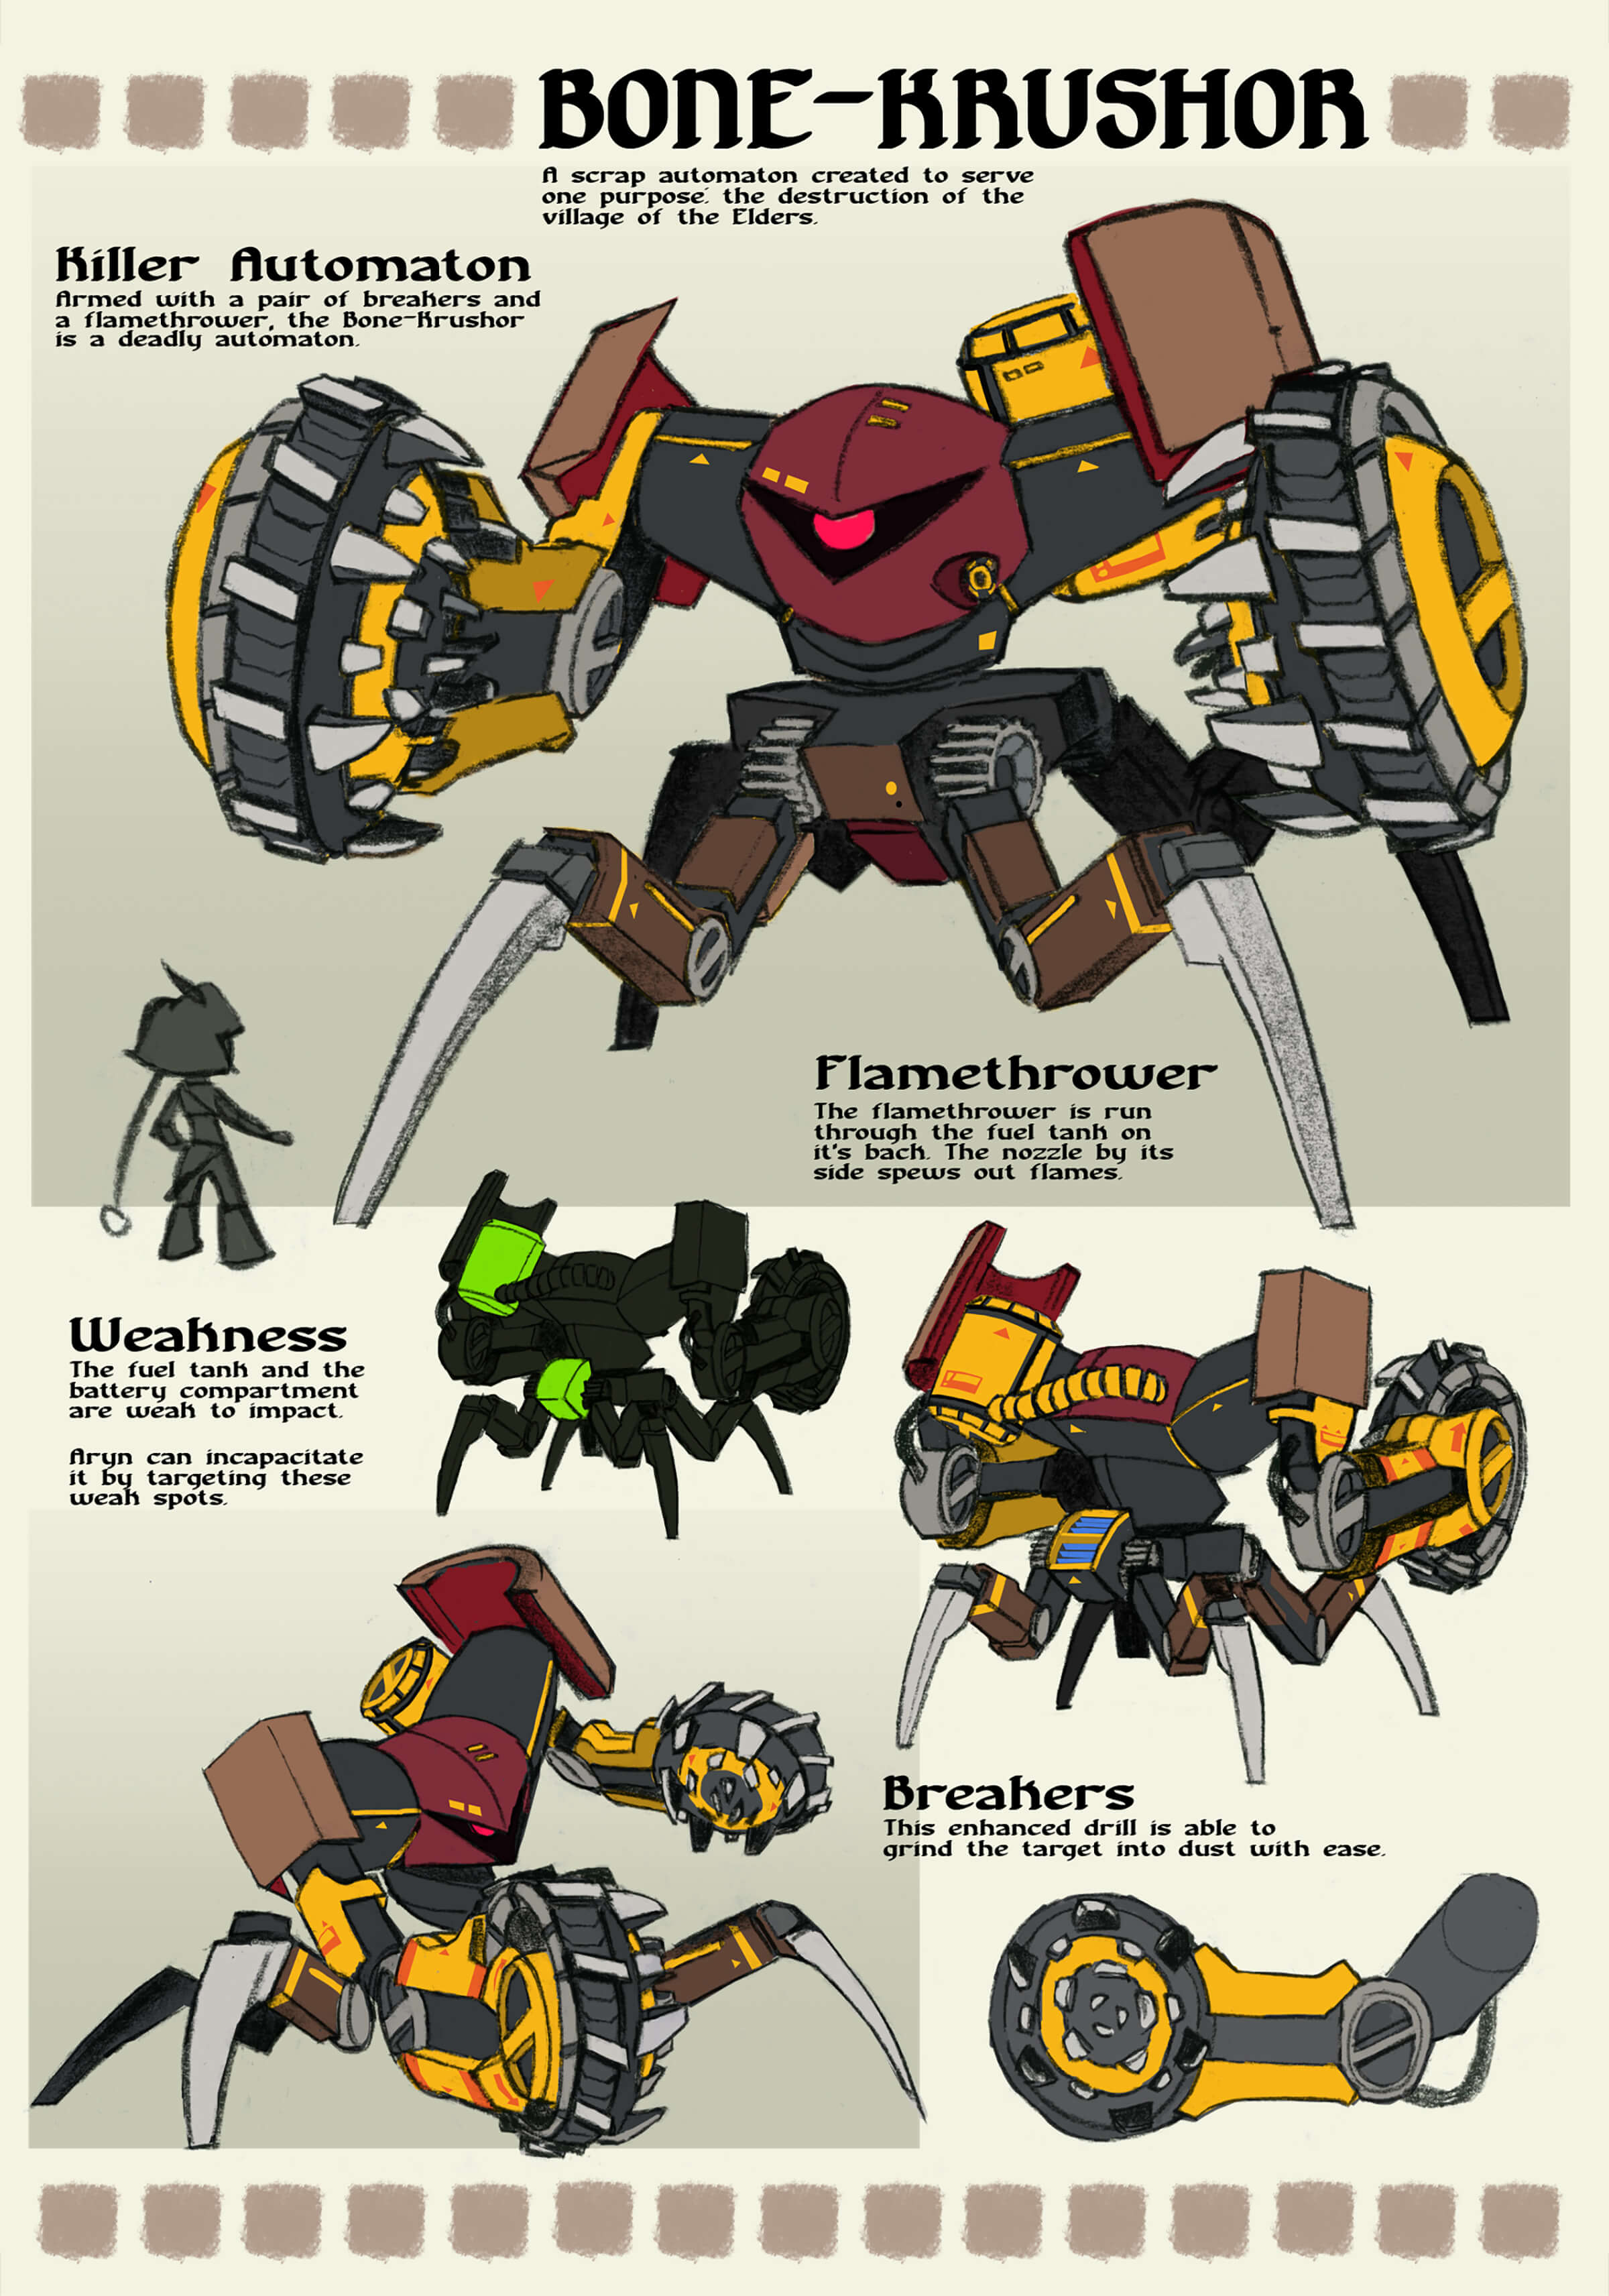 Concept art and details of a large quadrupedal robot with a single red eye and grinding wheel-like fists.